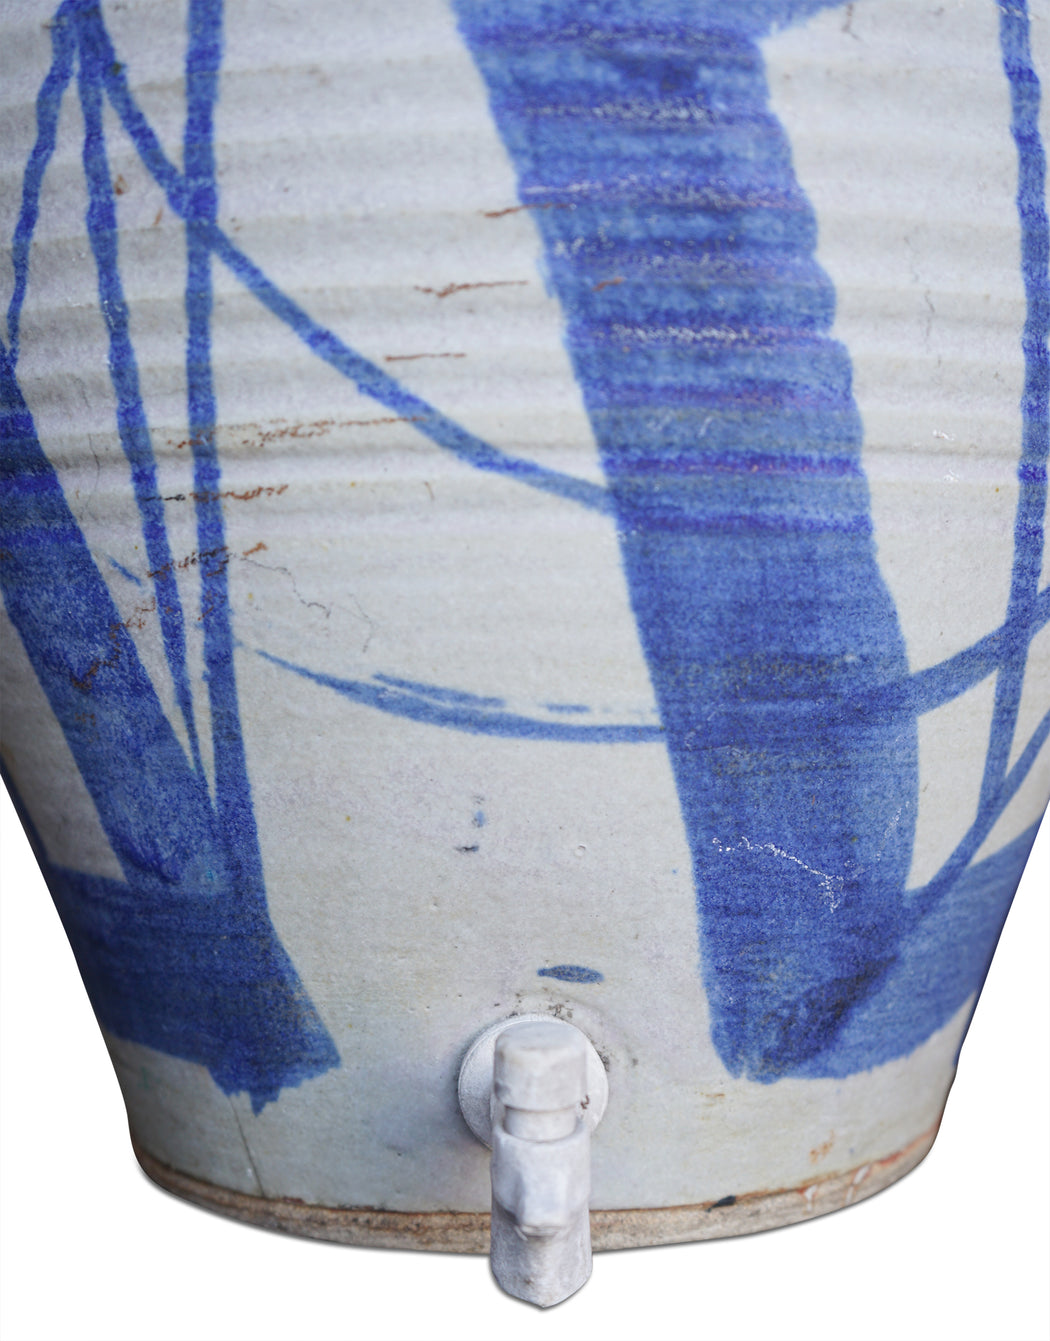 Large Ceramic Water Jug/Dispenser